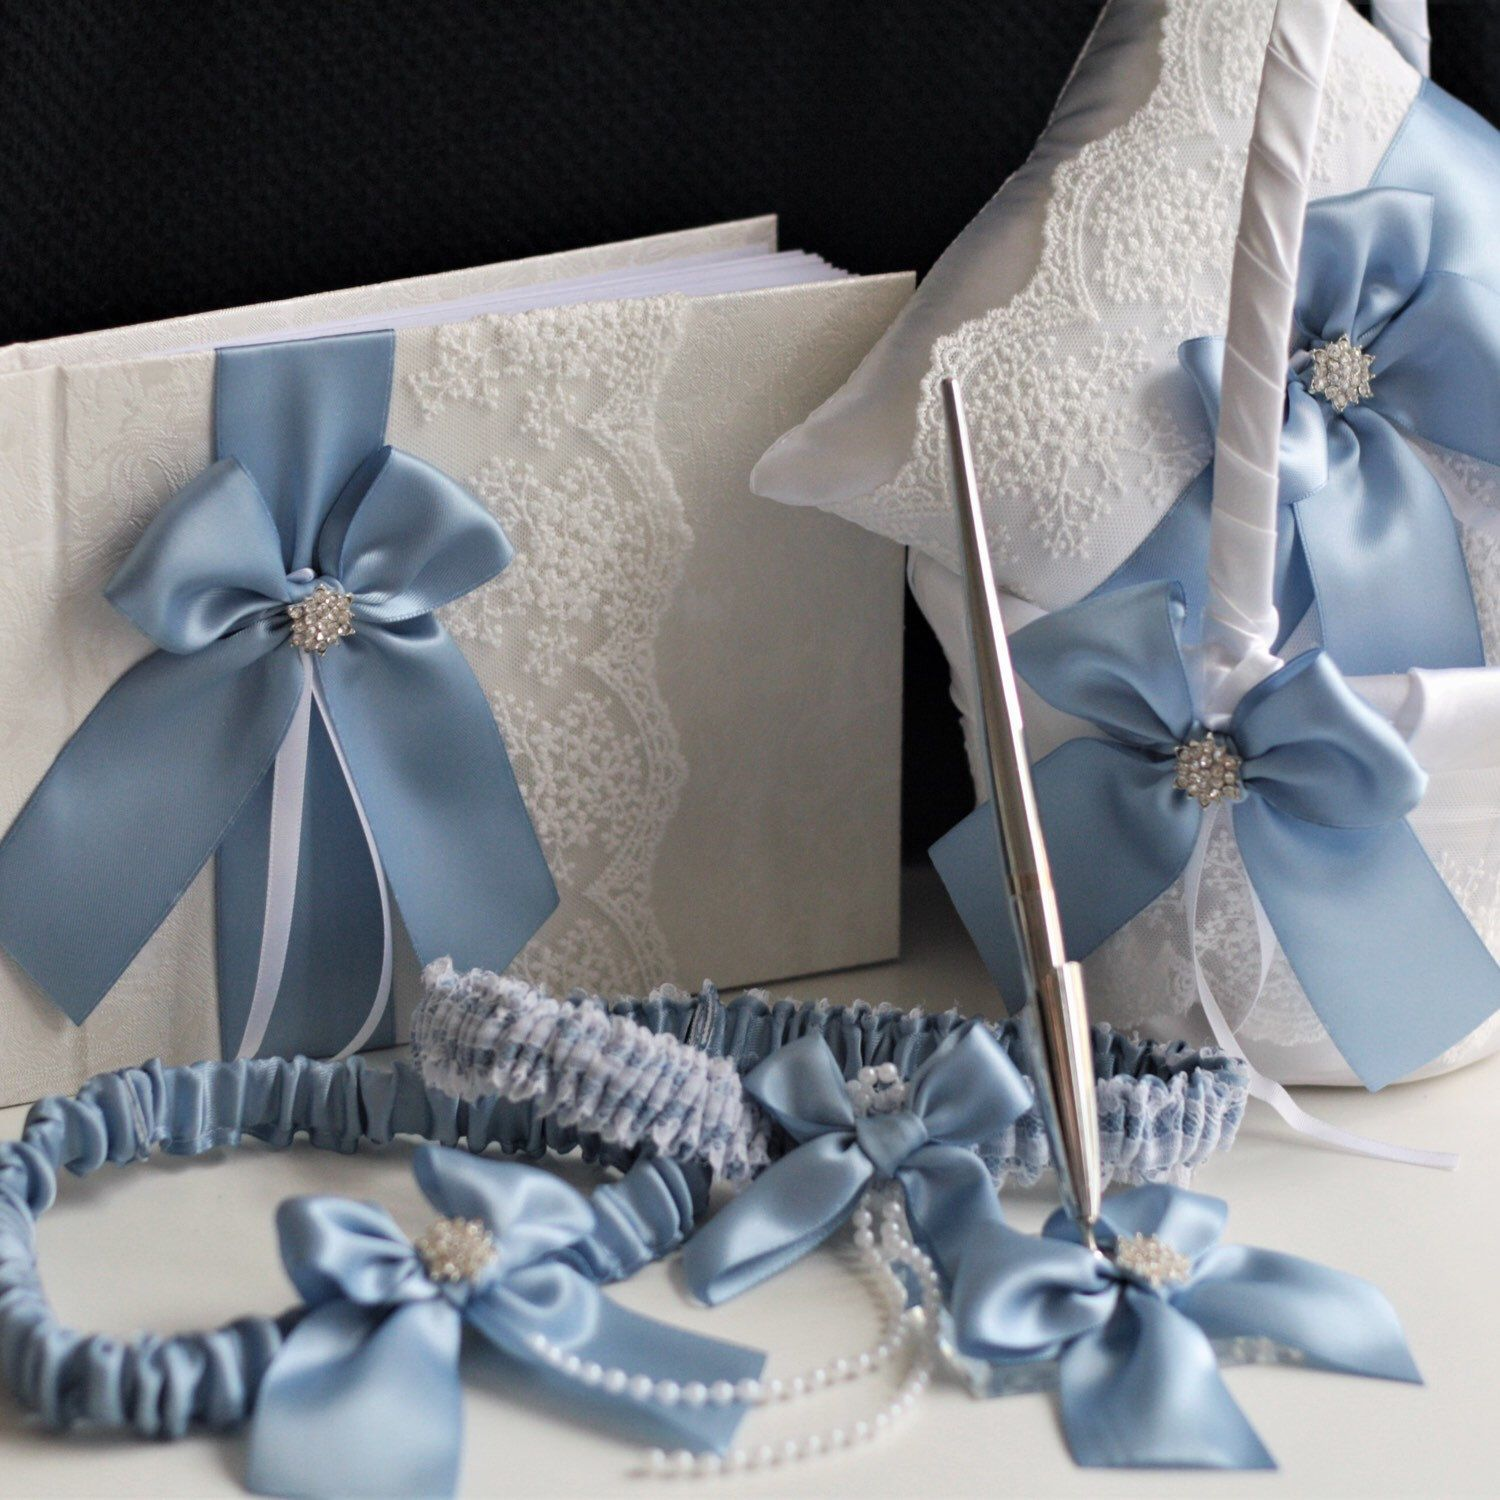 d274296c22f Steel Blue   White Wedding Accessories ♥ - Flower Girl Basket - Ring Bearer  Pillow - Garter Set - Guest Book with Pen Handmade by  alex emotions